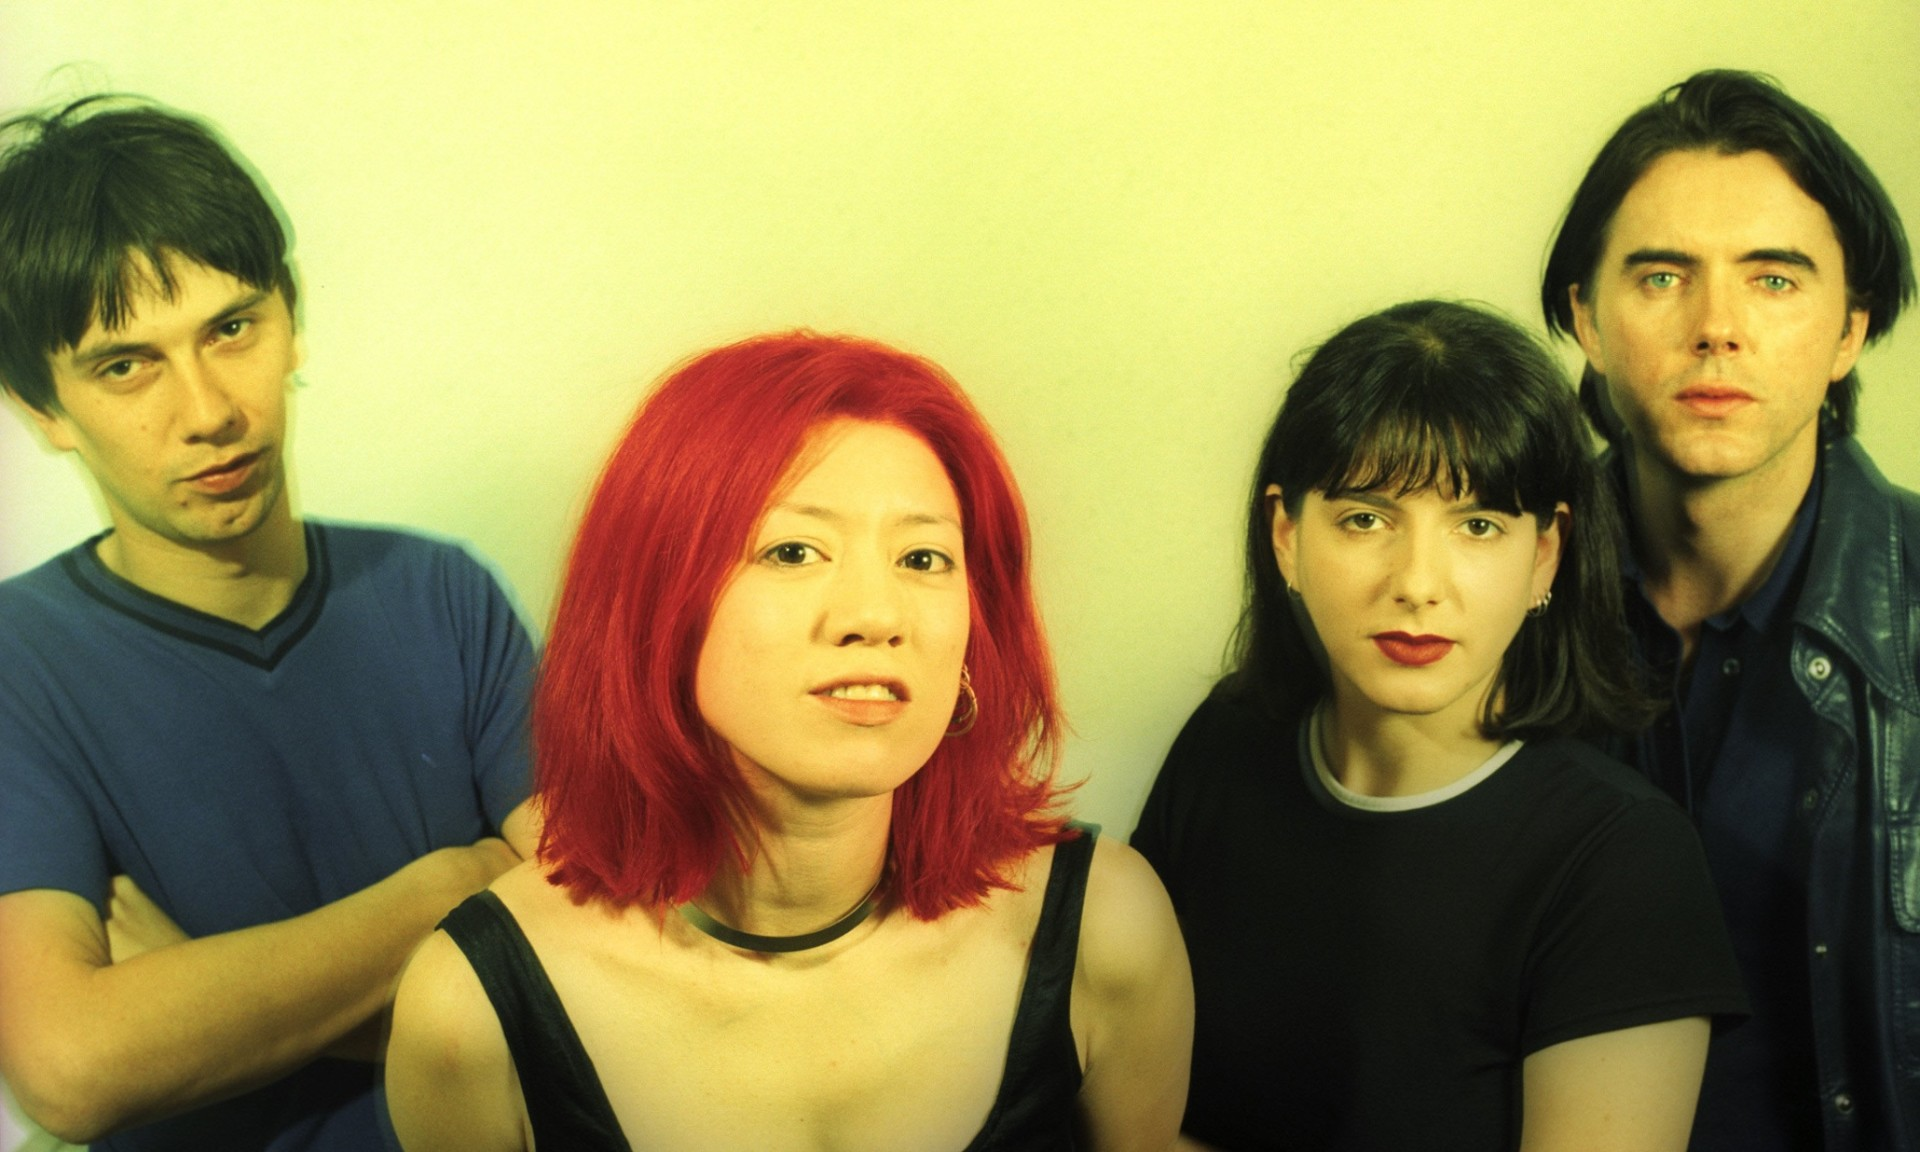 NEW YORK - JULY 1996: (EDITORS NOTE: THIS IMAGE WAS CREATED USING CROSS-PROCESSED FILM) English rock band Lush (L - R) bassist Phil King, vocalist/guitaristMiki Berenyi, guitarist Emma Anderson and drummer Chris Acland pose for a July 1996 portrait in New York City, New York. (Photo by Bob Berg/Getty Images